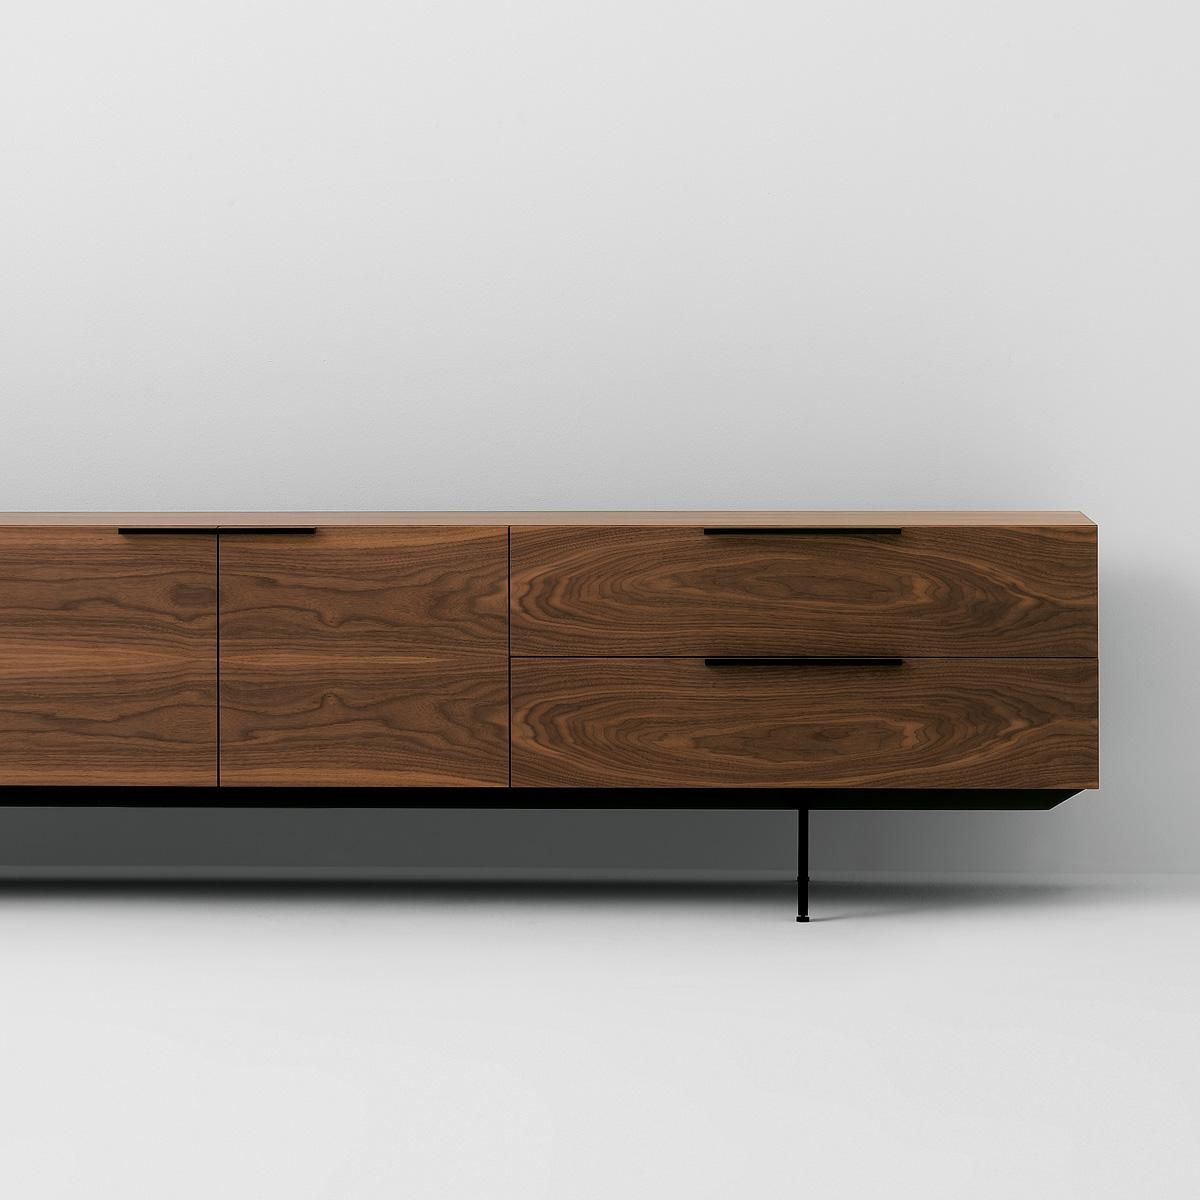 Sideboard Wand Great Dane Furniture Is Australia S Number 1 Retailer Of Danish